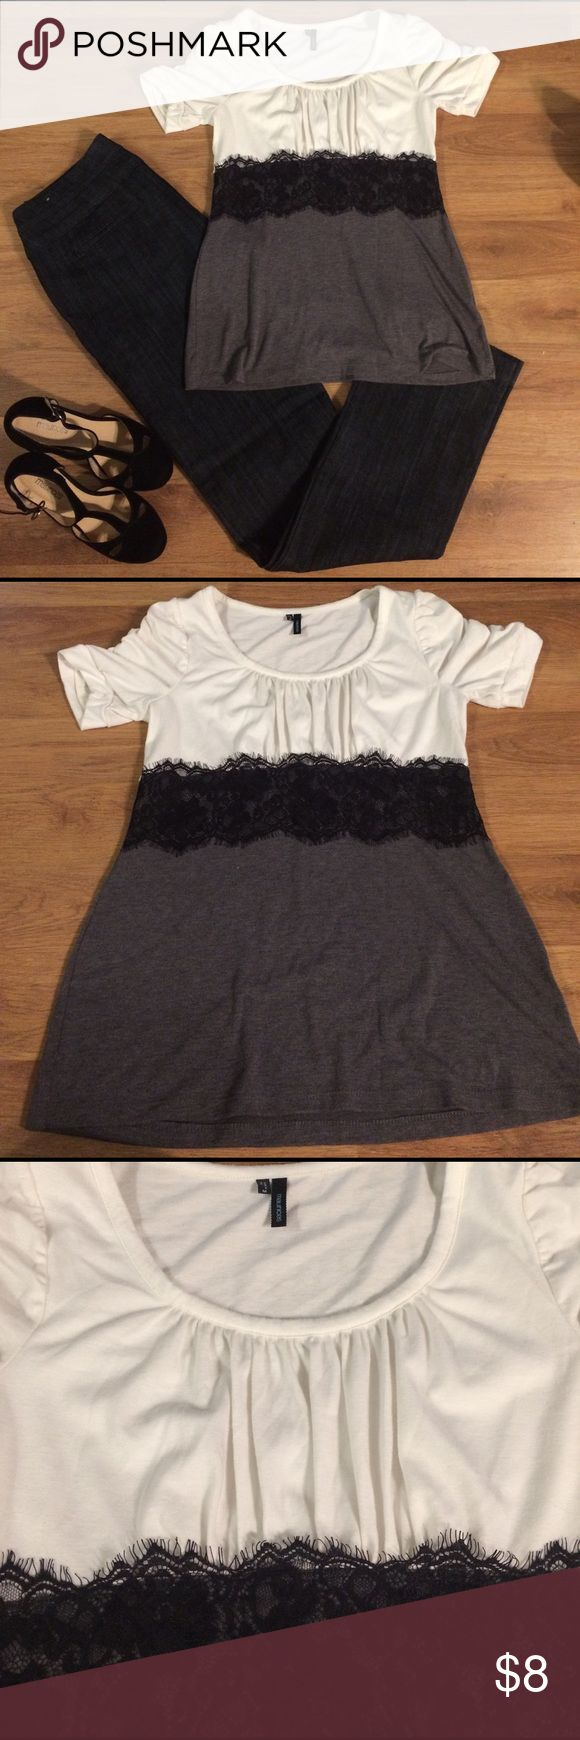 Colorblock Shirt with Black Lace Waist Detail White and grey colorblock shirt with a black lace band across the waist in the front. It's from Maurices and is a size medium. Maurices Tops